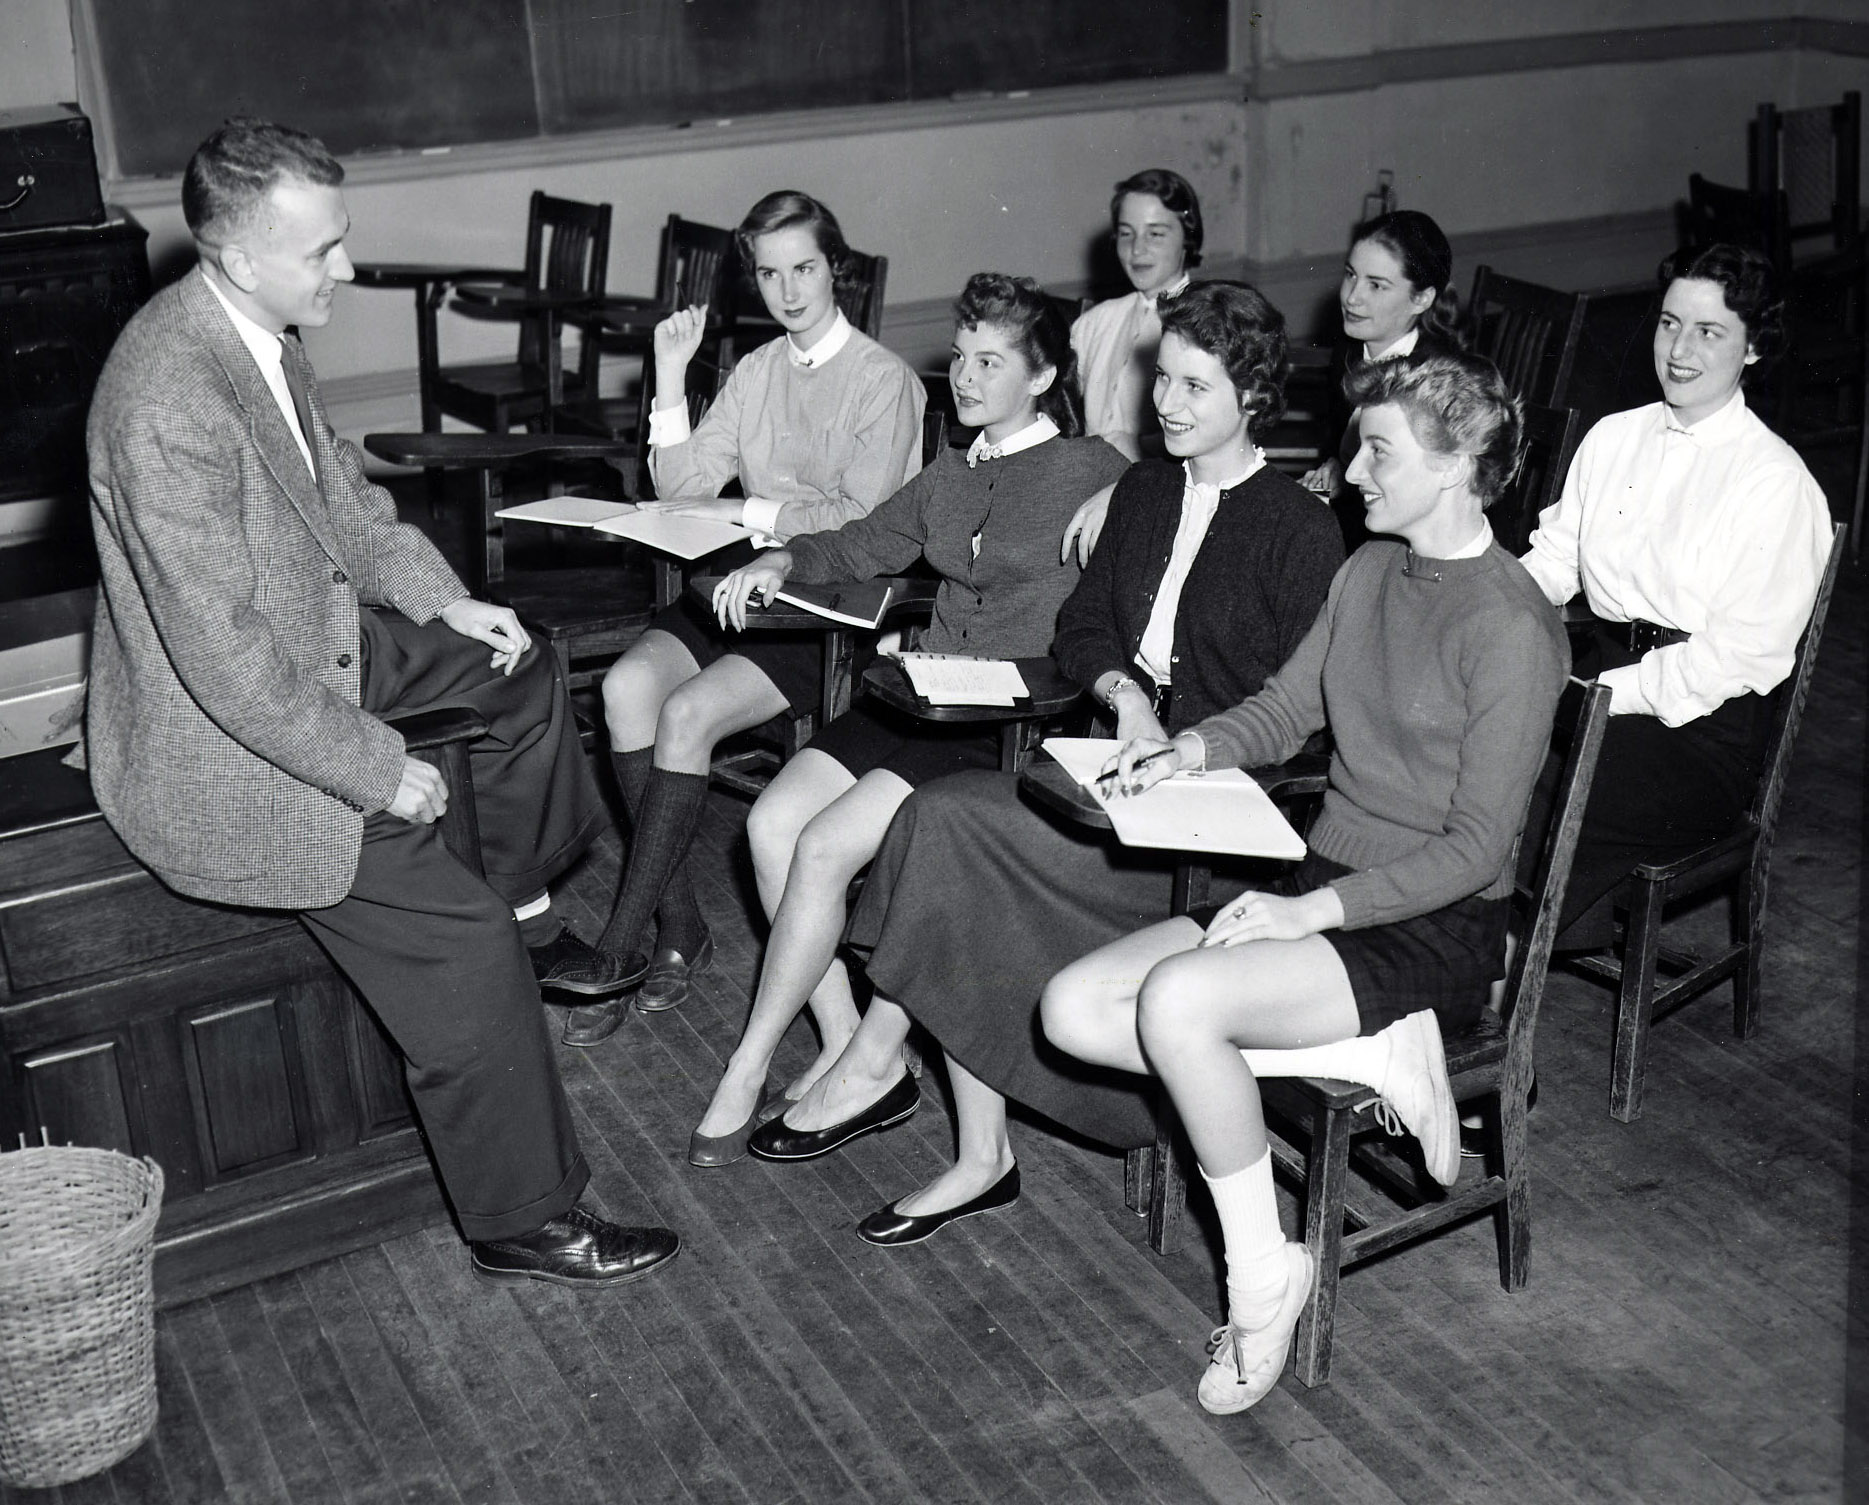 College of Education History: The 1950s